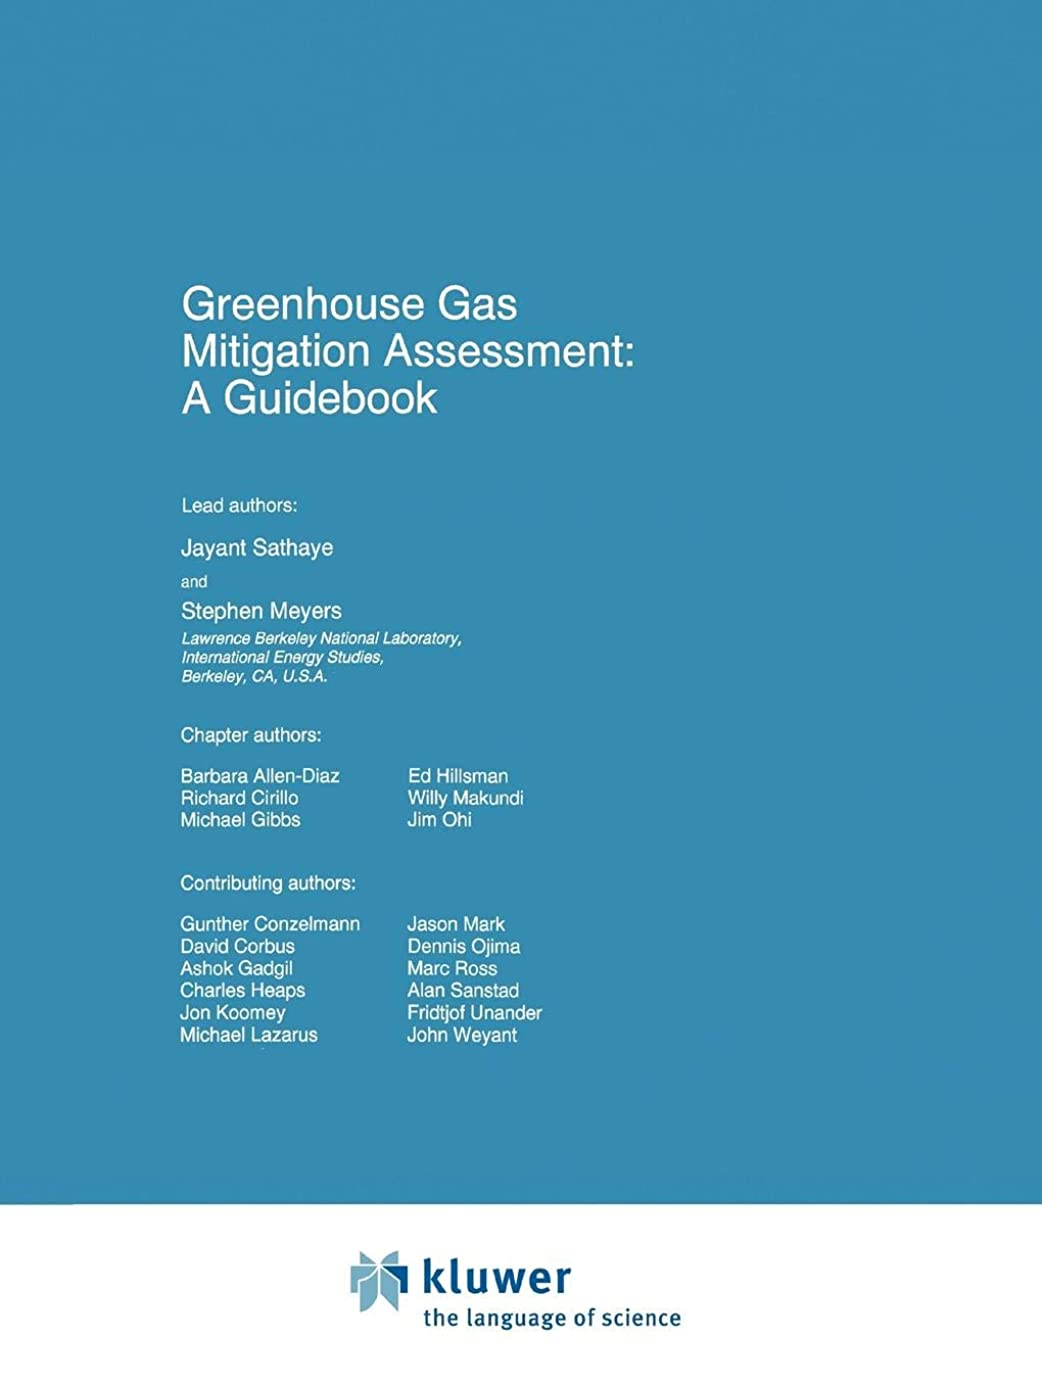 褒賞橋欠伸Greenhouse Gas Mitigation Assessment: A Guidebook (Environmental Science and Technology Library)